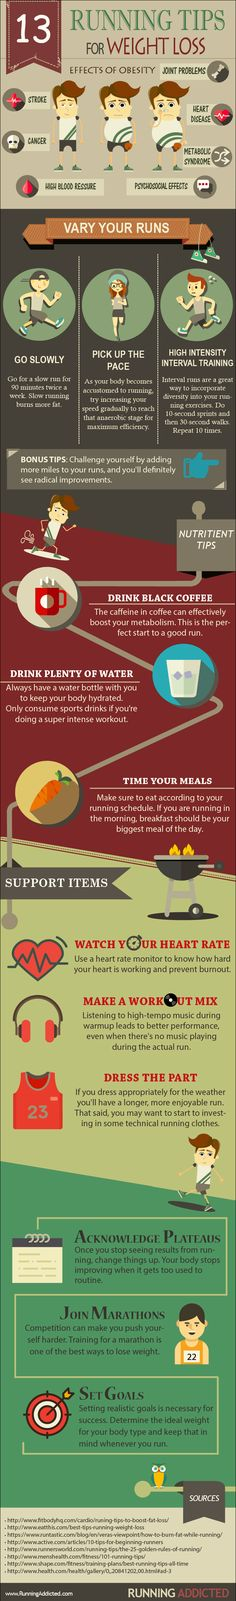 How to Lose Weight by Running - Infographic